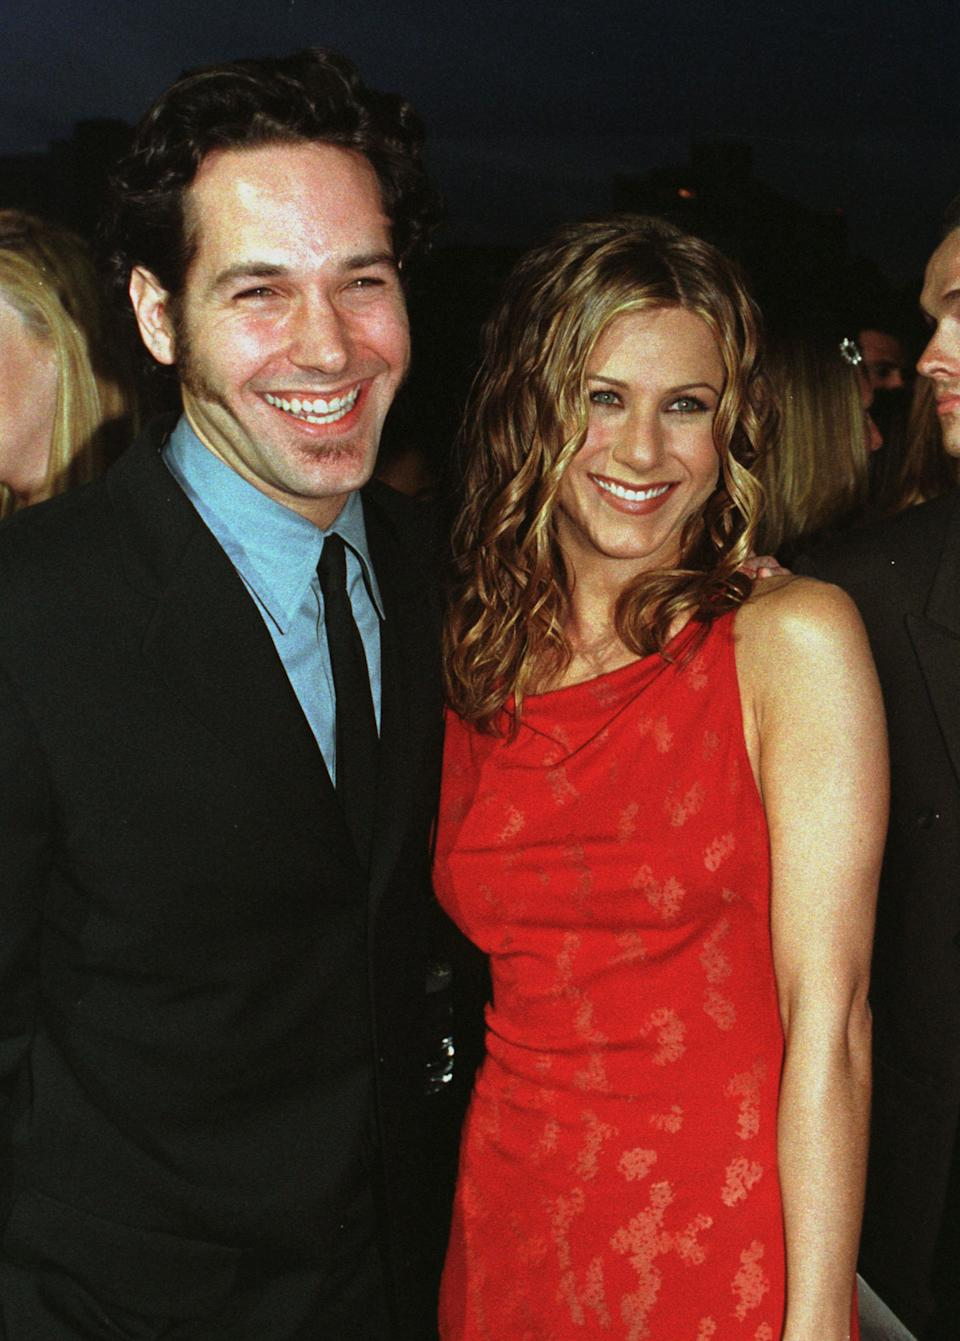 Actress Jennifer Aniston and Paul Rudd, stars of the new romantic comedy